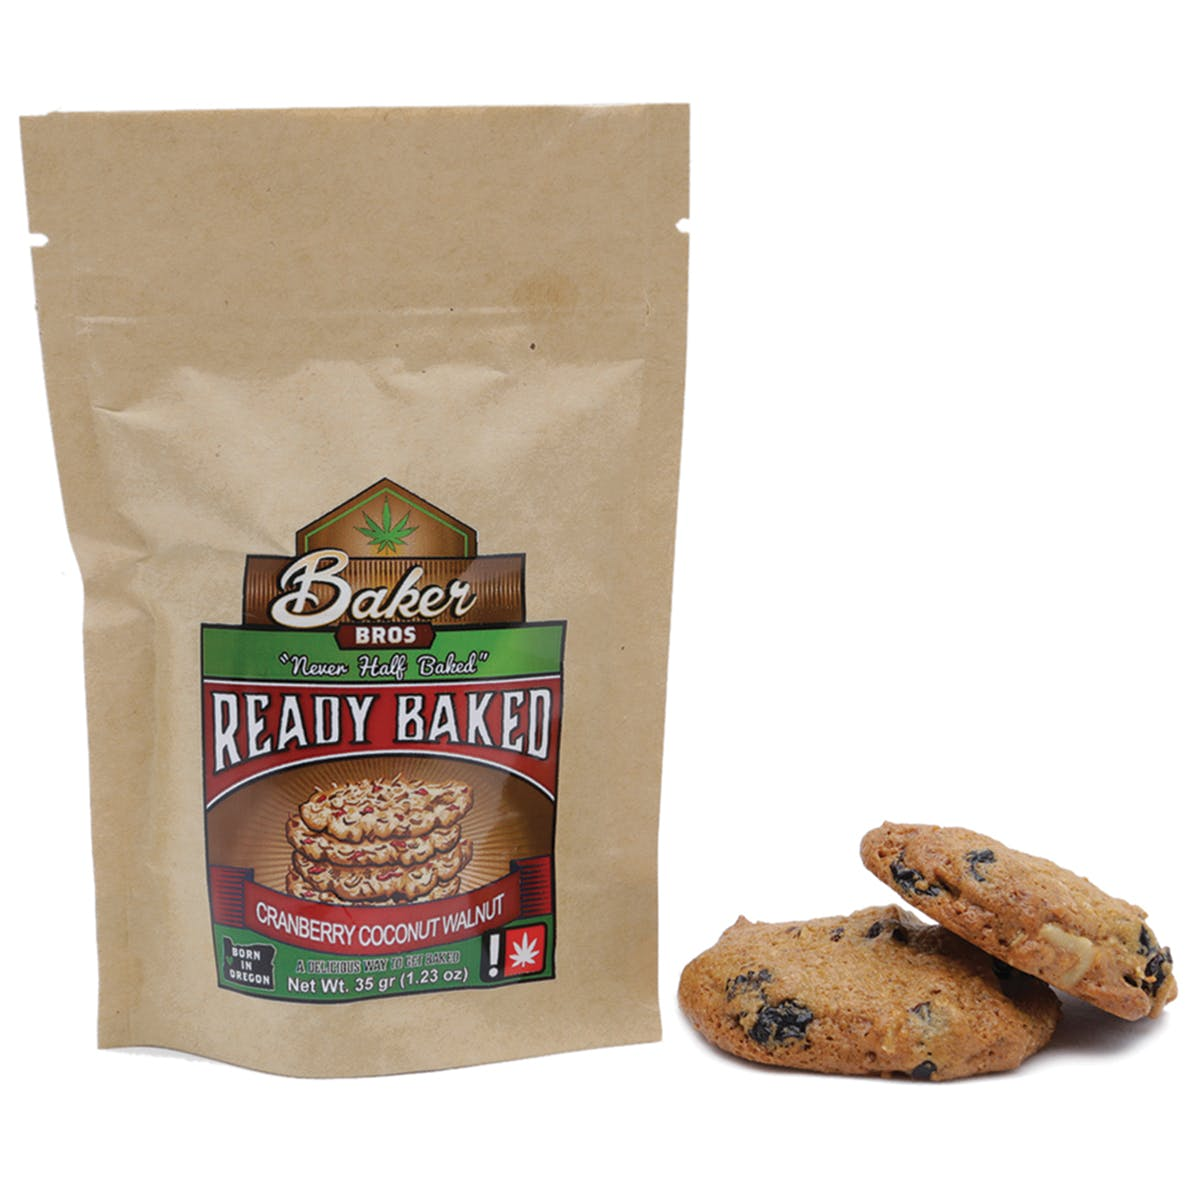 marijuana-dispensaries-1291-west-7th-ave-eugene-ready-baked-2c-mini-cranberry-walnut-coconut-kookies